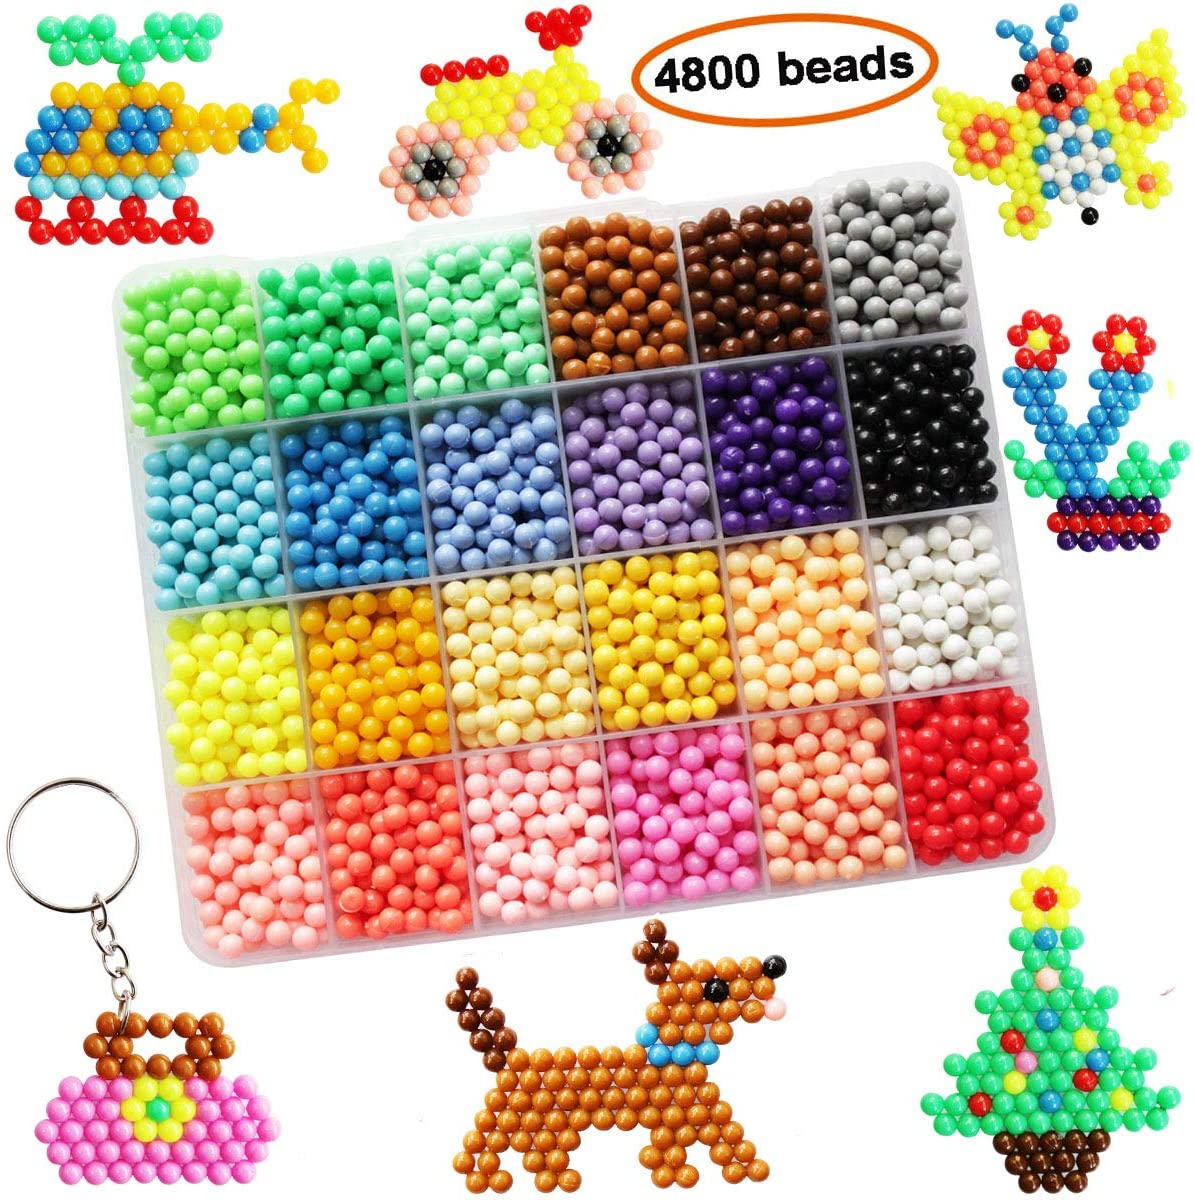 Mipartebo Water Fuse Beads 24 Colors 4800 Beads Magic Water Sticky Beads Set Fun DIY Art Crafts Toys for Kids Beginners